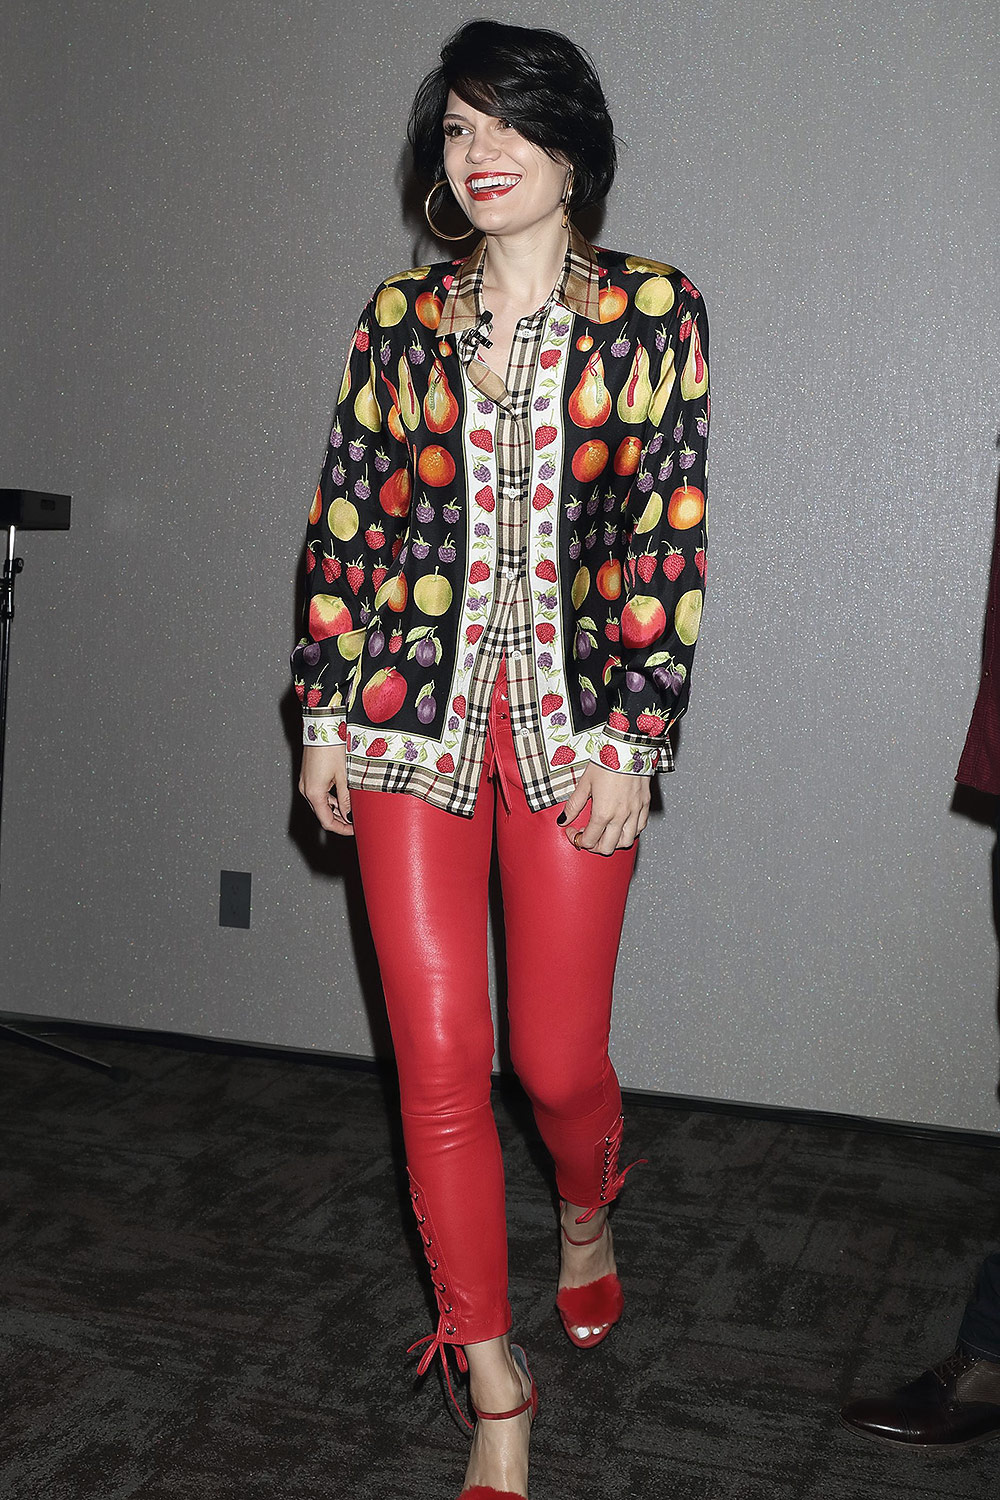 Jessie J attends a photo call and press conference